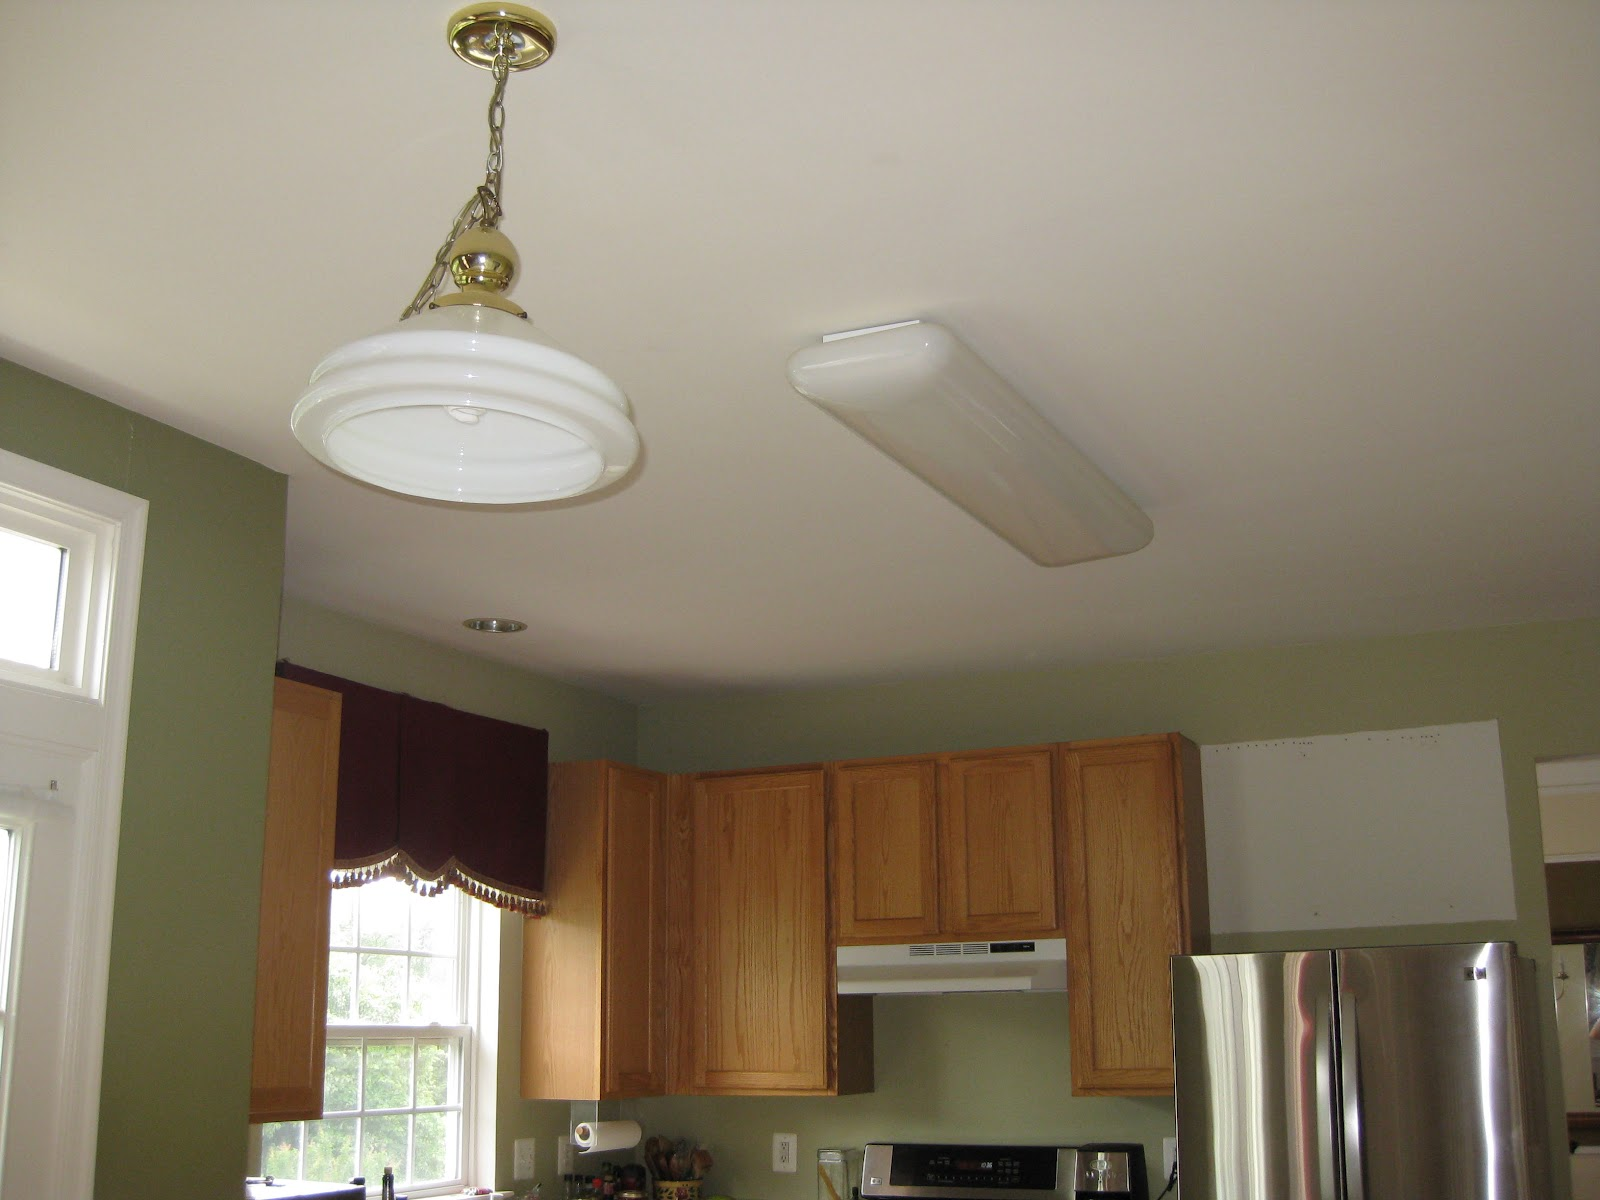 Thinking About Installing Recessed Lights?